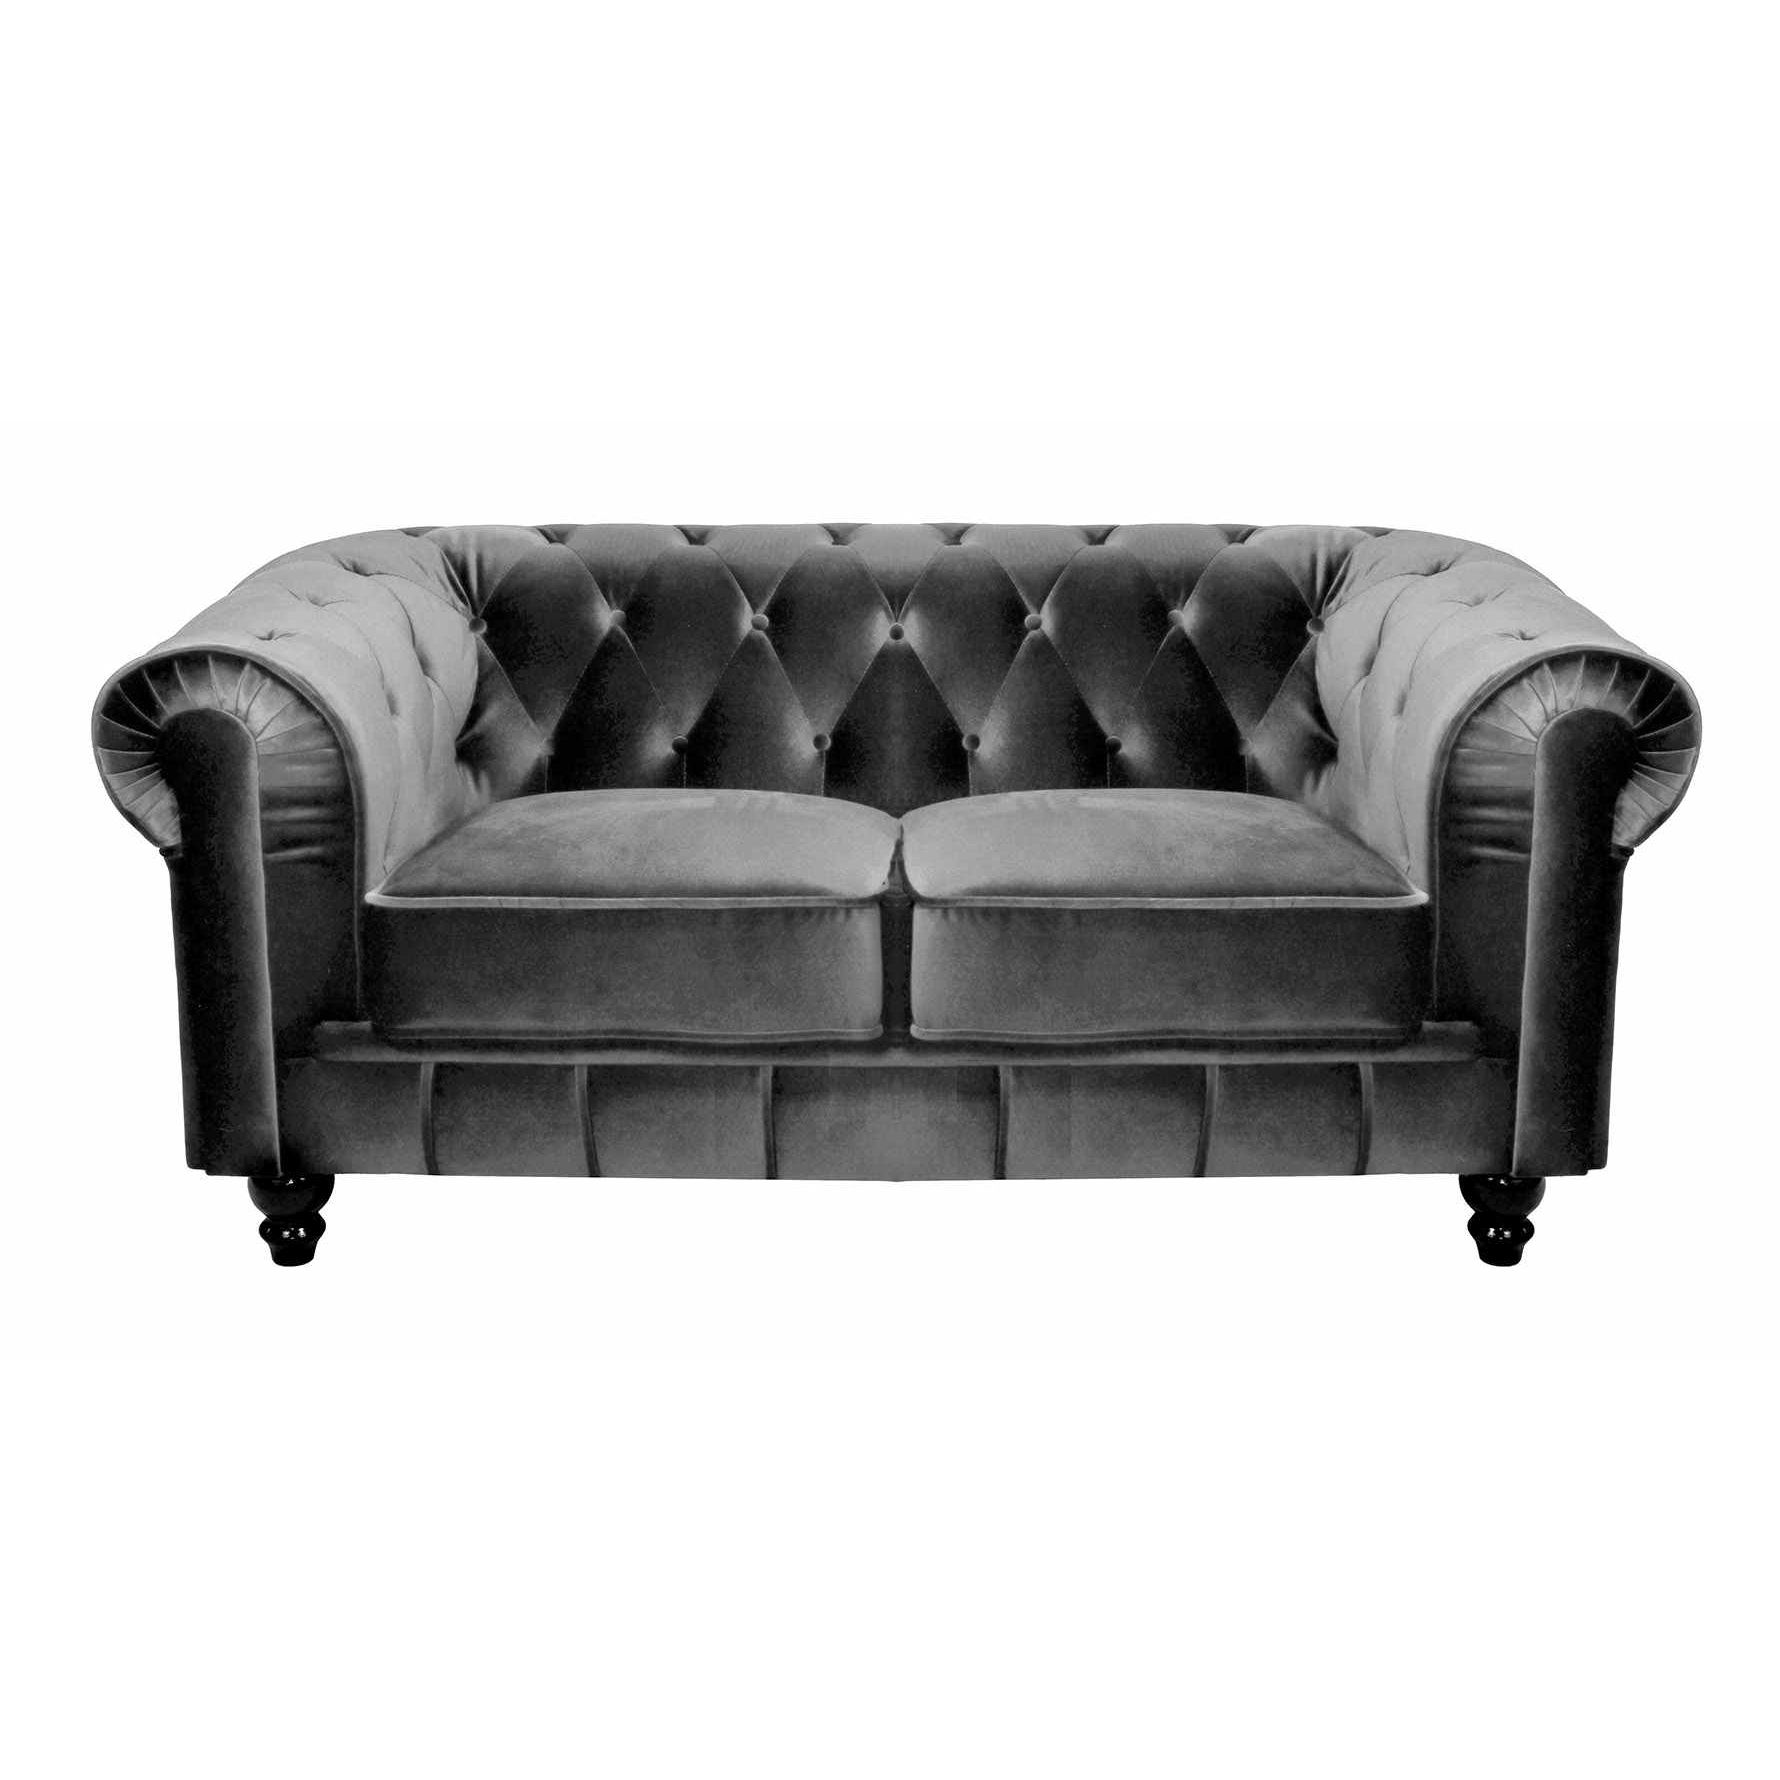 Deco in paris canape 2 places velours gris chesterfield - Canape chesterfield but ...